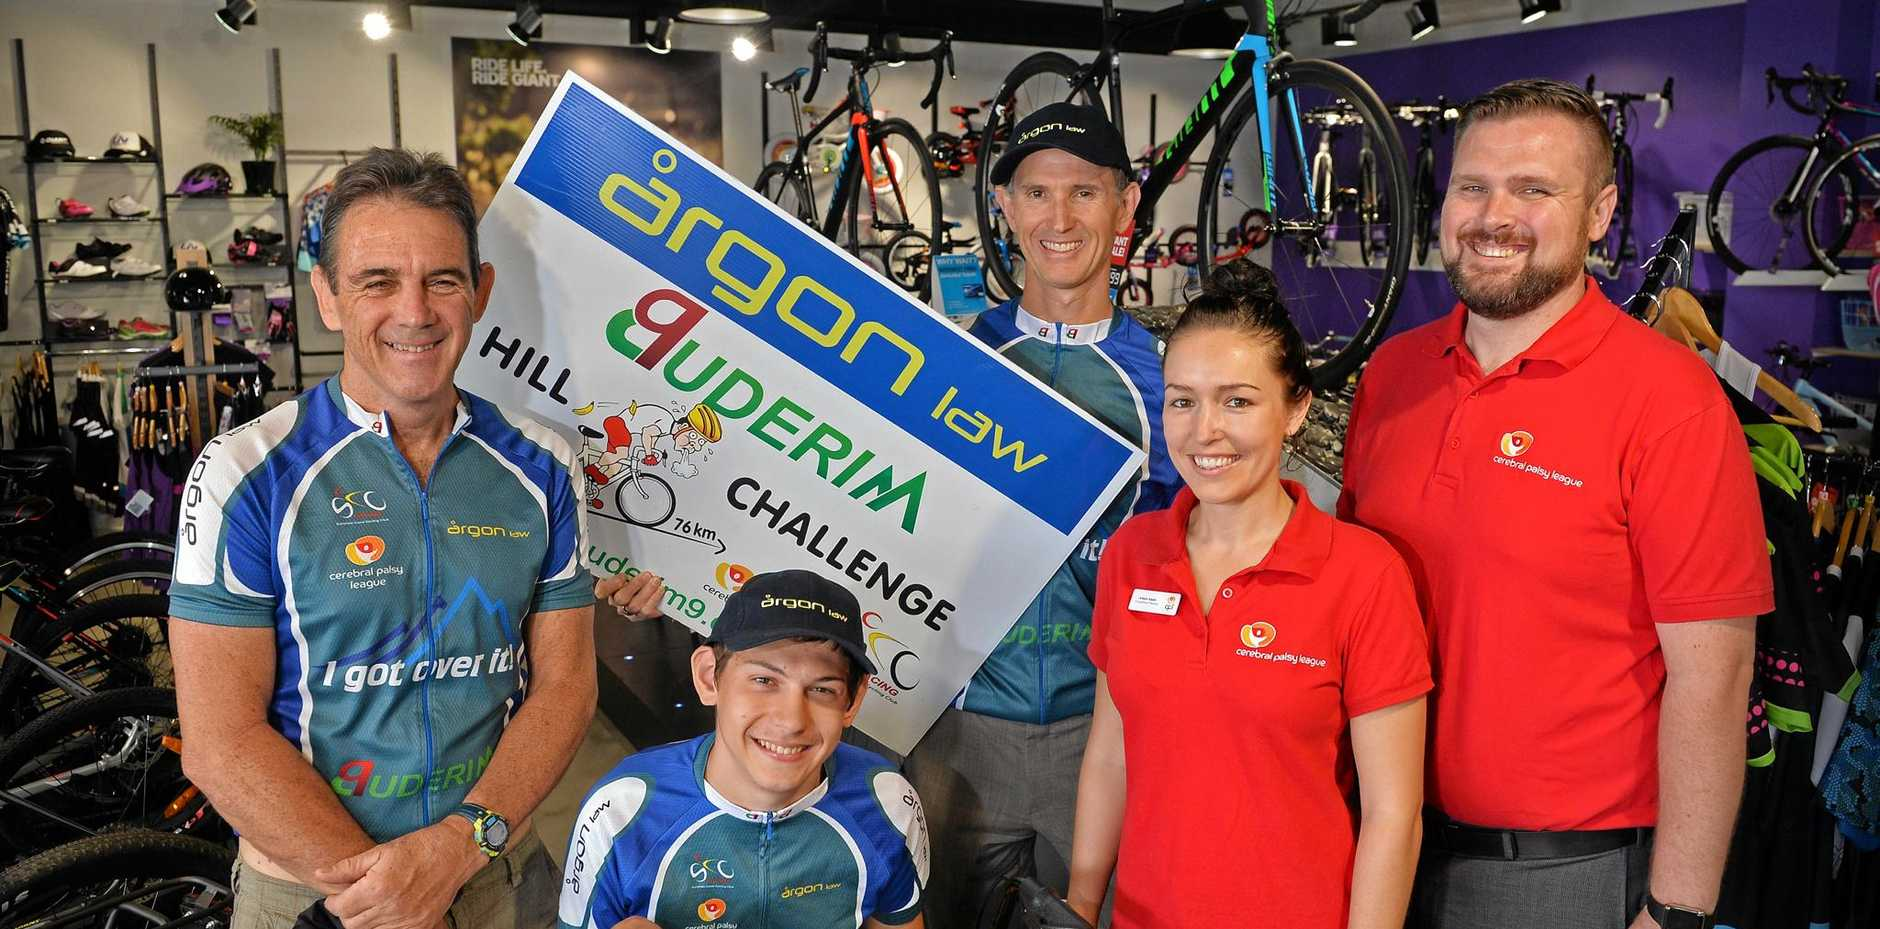 Dave Wighton, Josh Paix, John Gallagher, Aileen Adam and Pete Evans ready for the Buderim 9.